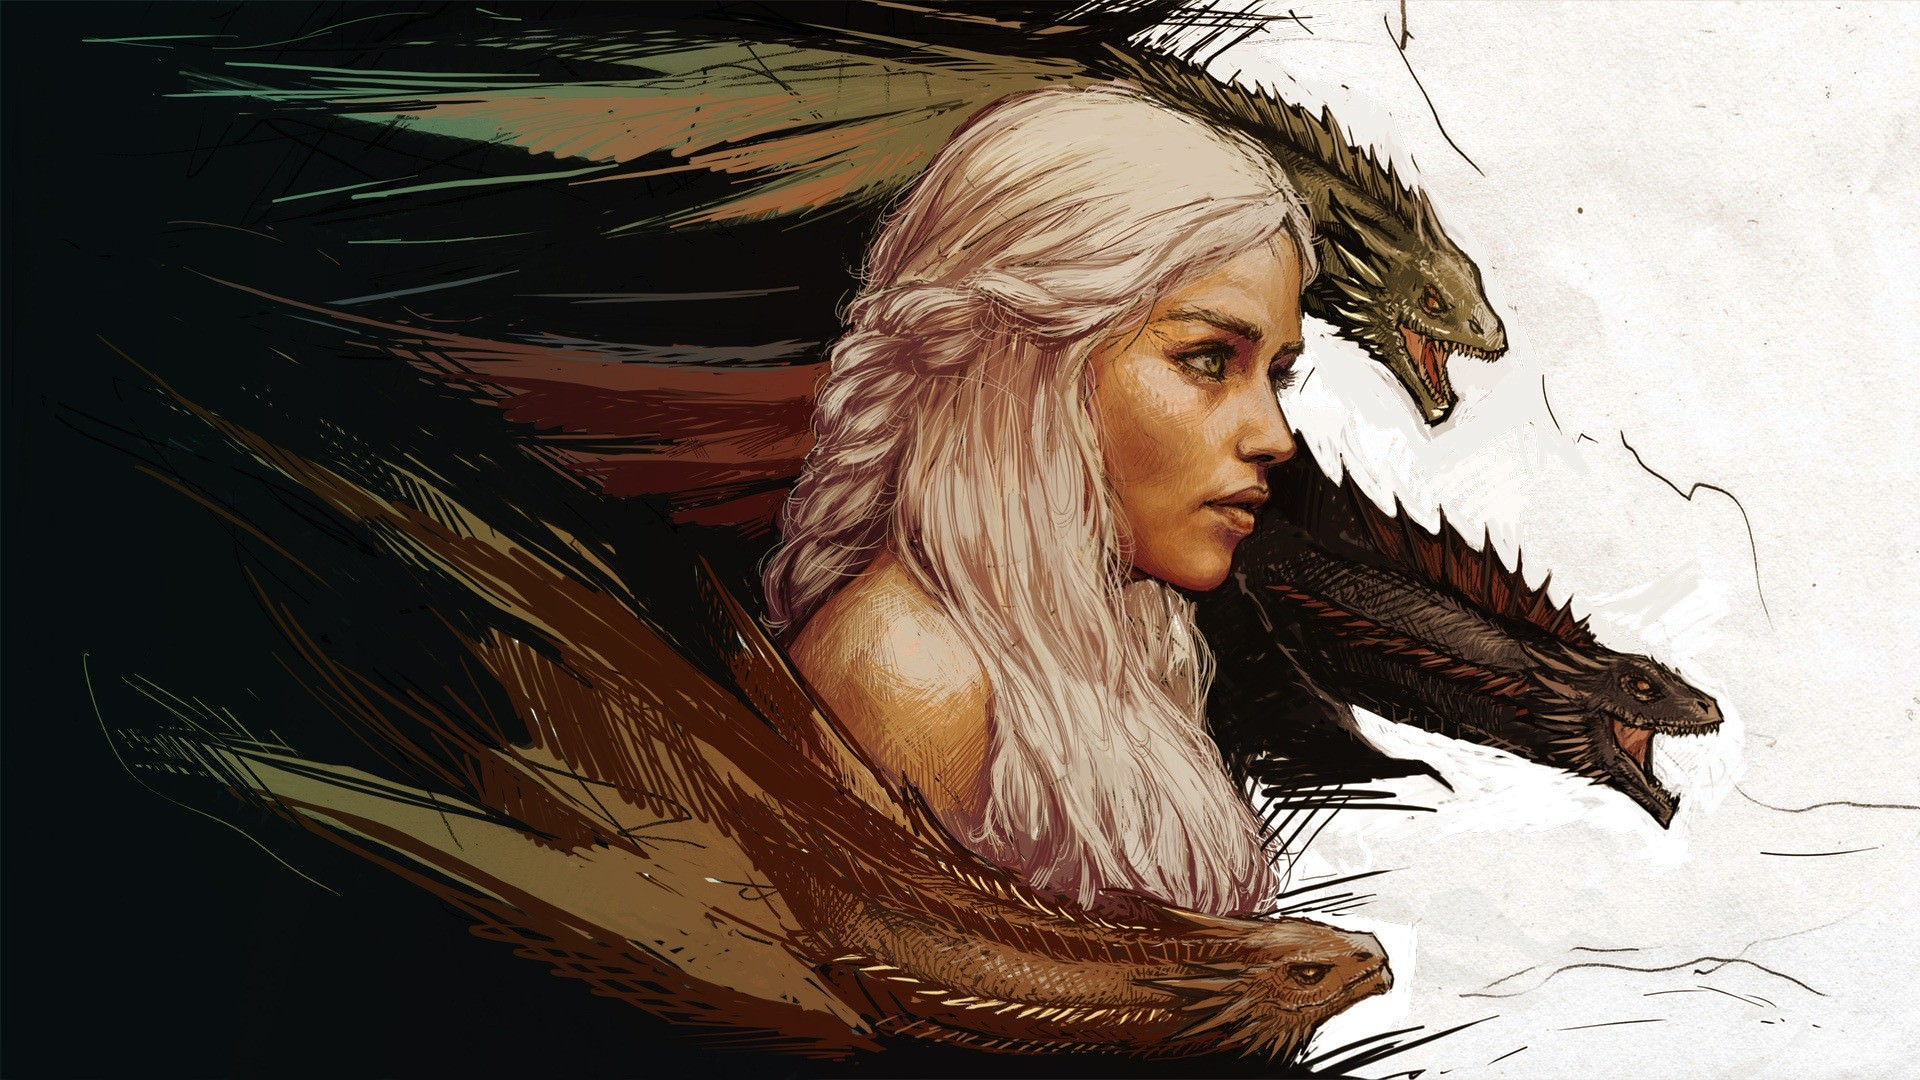 Game of Thrones Khaleesi Wallpaper   DigitalArtio 1920x1080